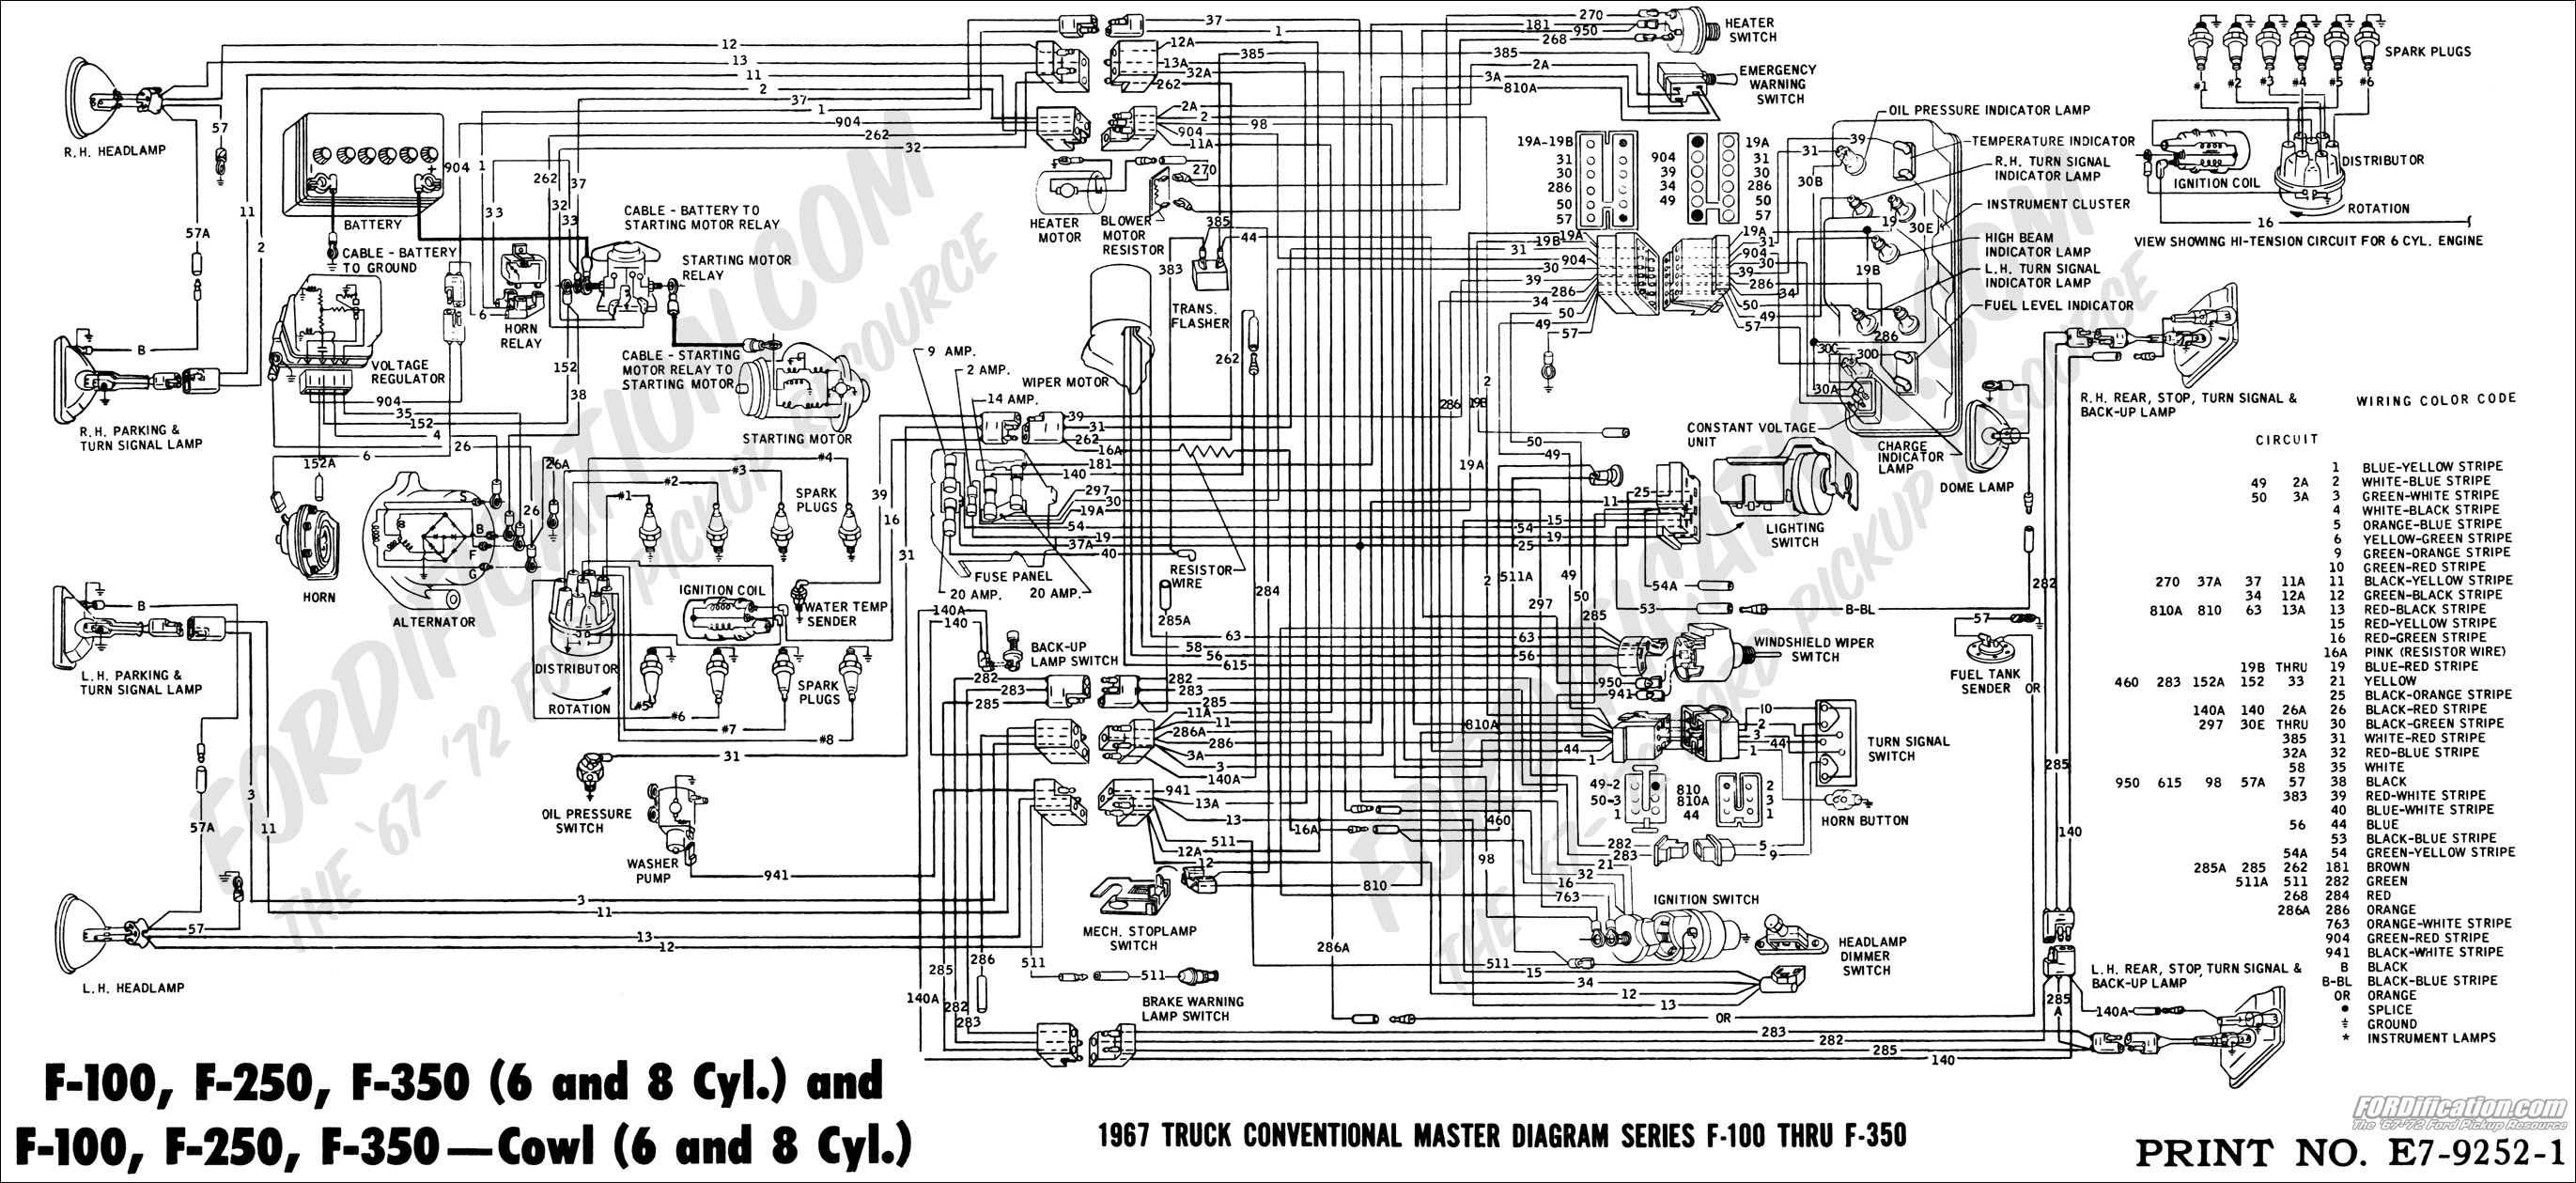 2002 Ford F150 Wiring Harness Diagram Wiring Diagram Forward